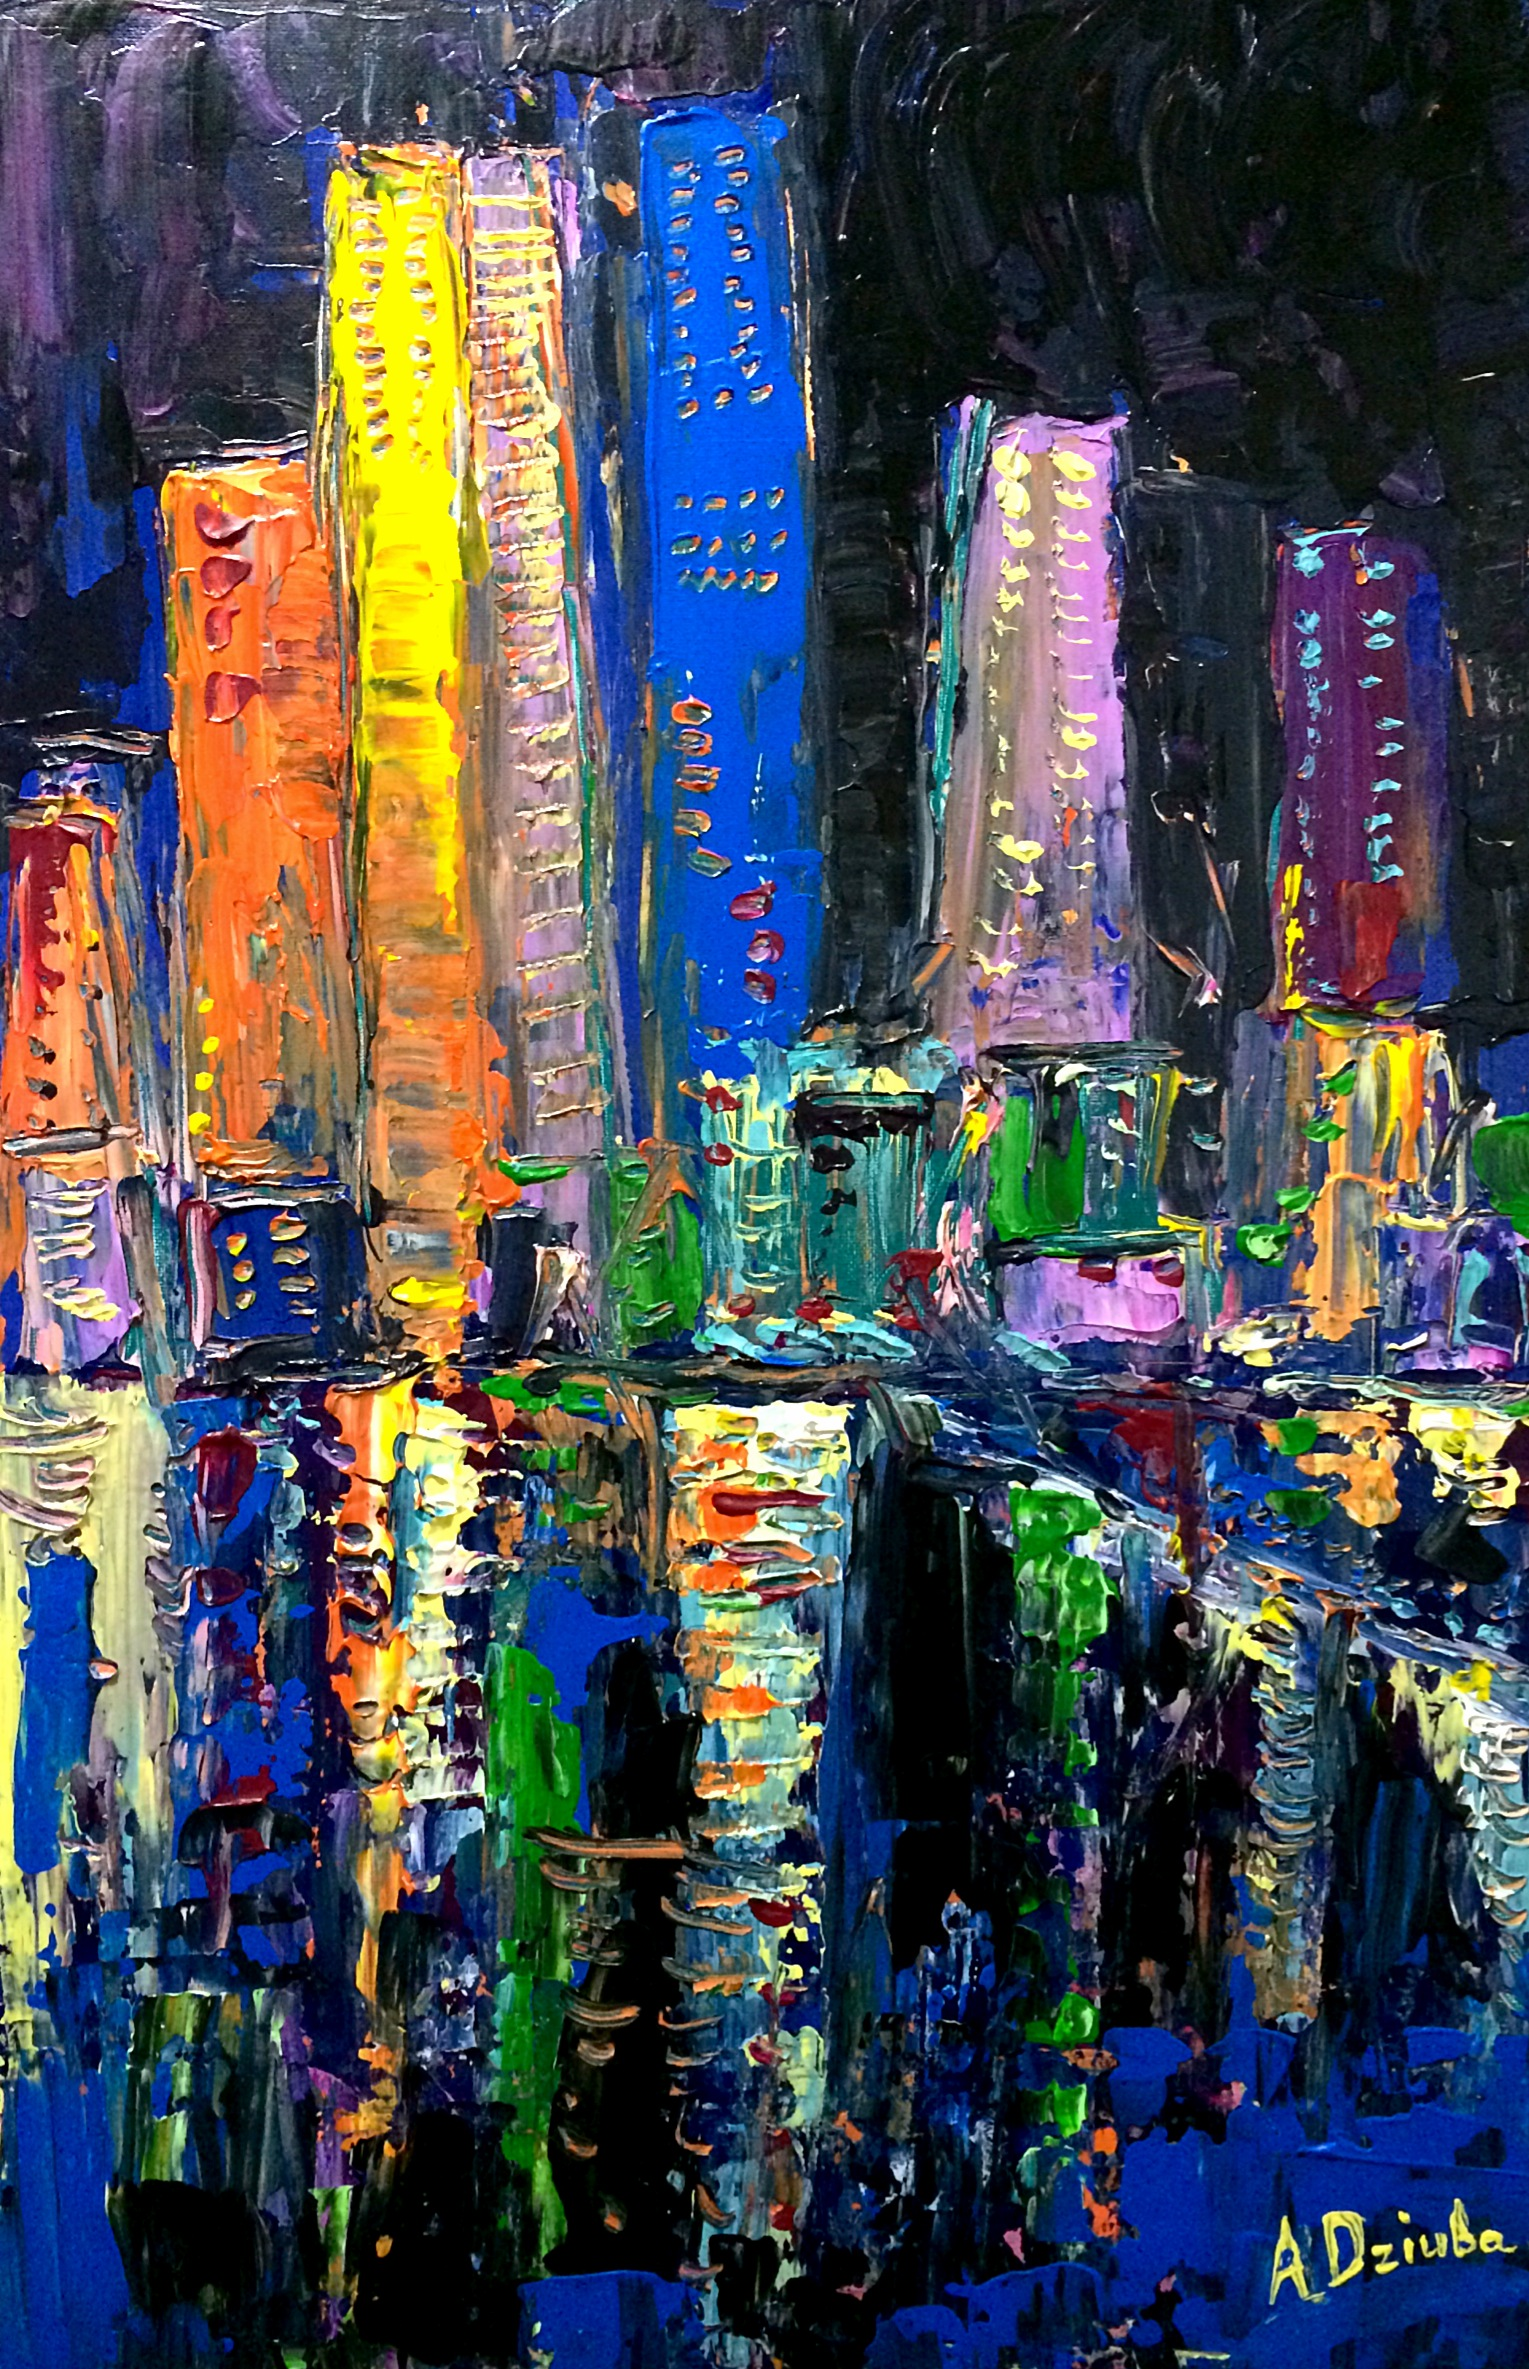 Night Colours - Original abstract painting of the Hong Kong skyscrapers by Adriana Dziuba